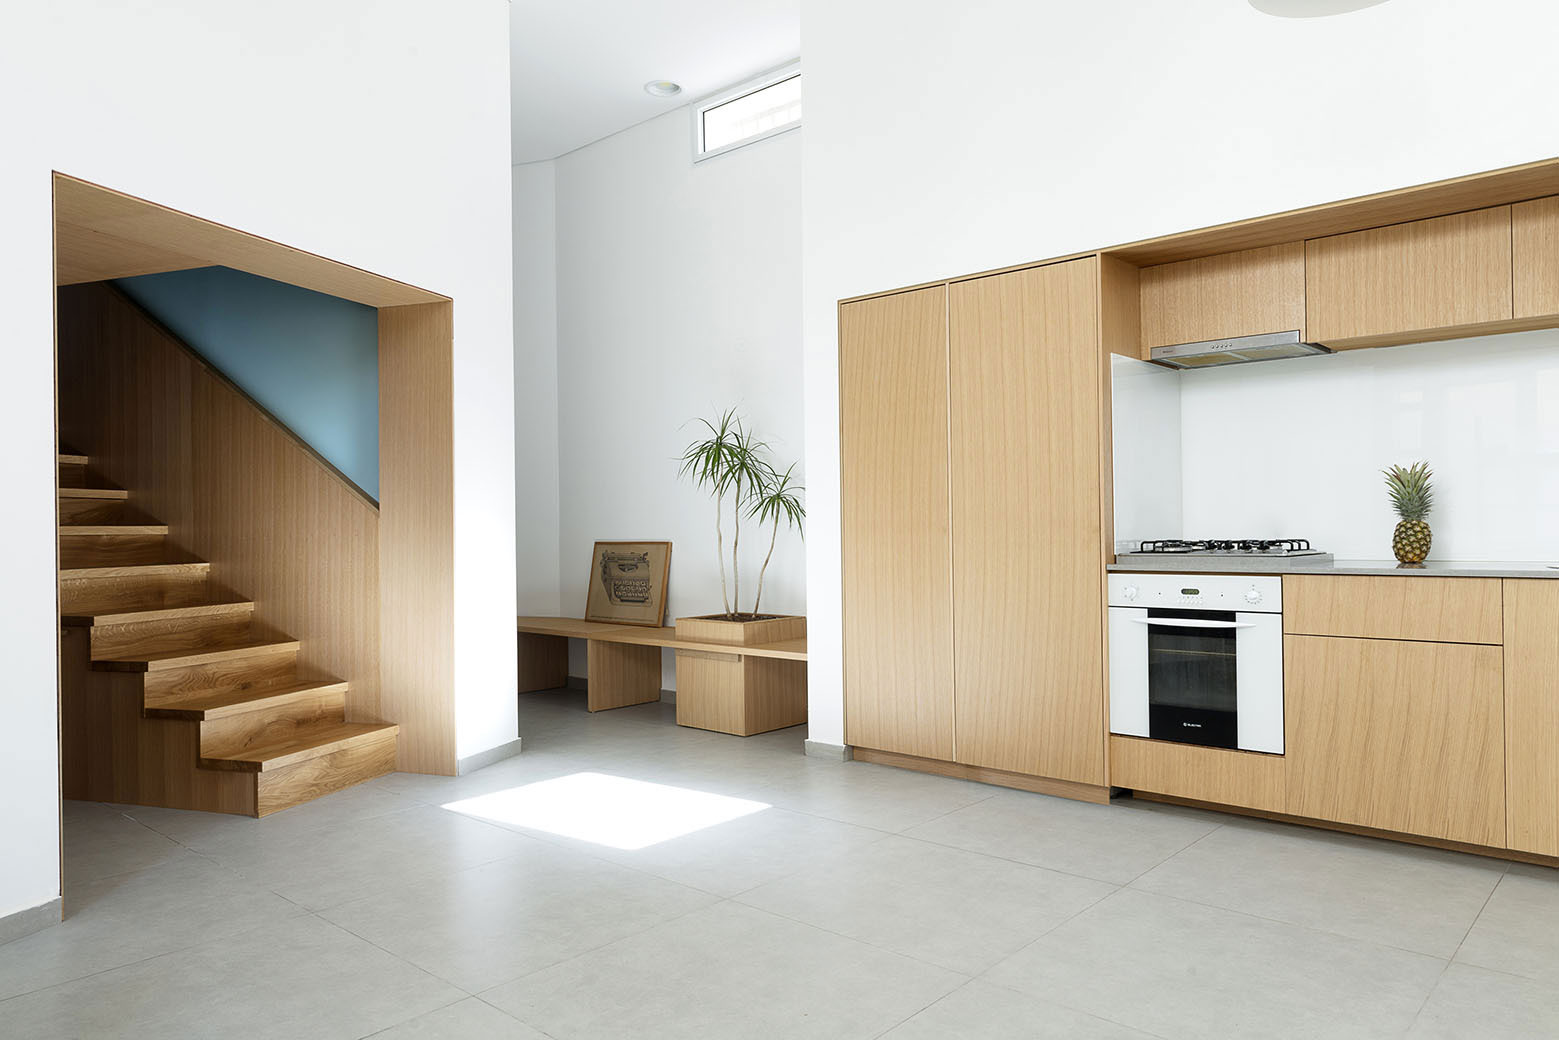 Adjusting a Mish-Mash of Small Rooms and Corridors into Jaffa Garden Apartment by Itai Palti-06